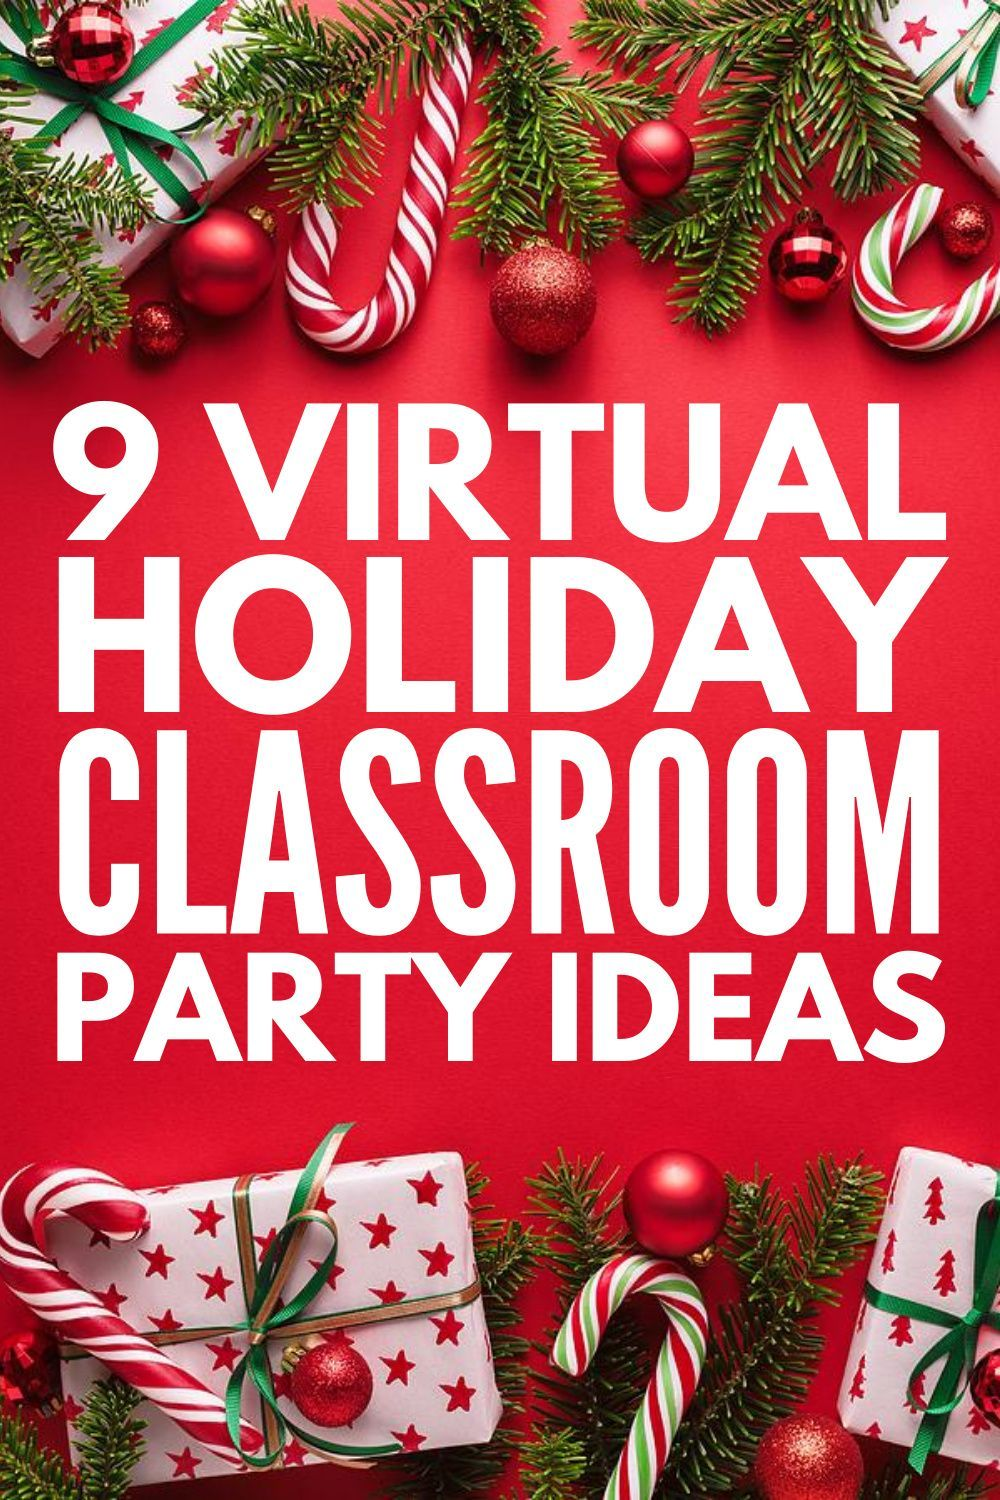 9 Easy And Fun Virtual Classroom Party Ideas Your Students Will Love In 2020 School Christmas Party Classroom Party Kids Christmas Party